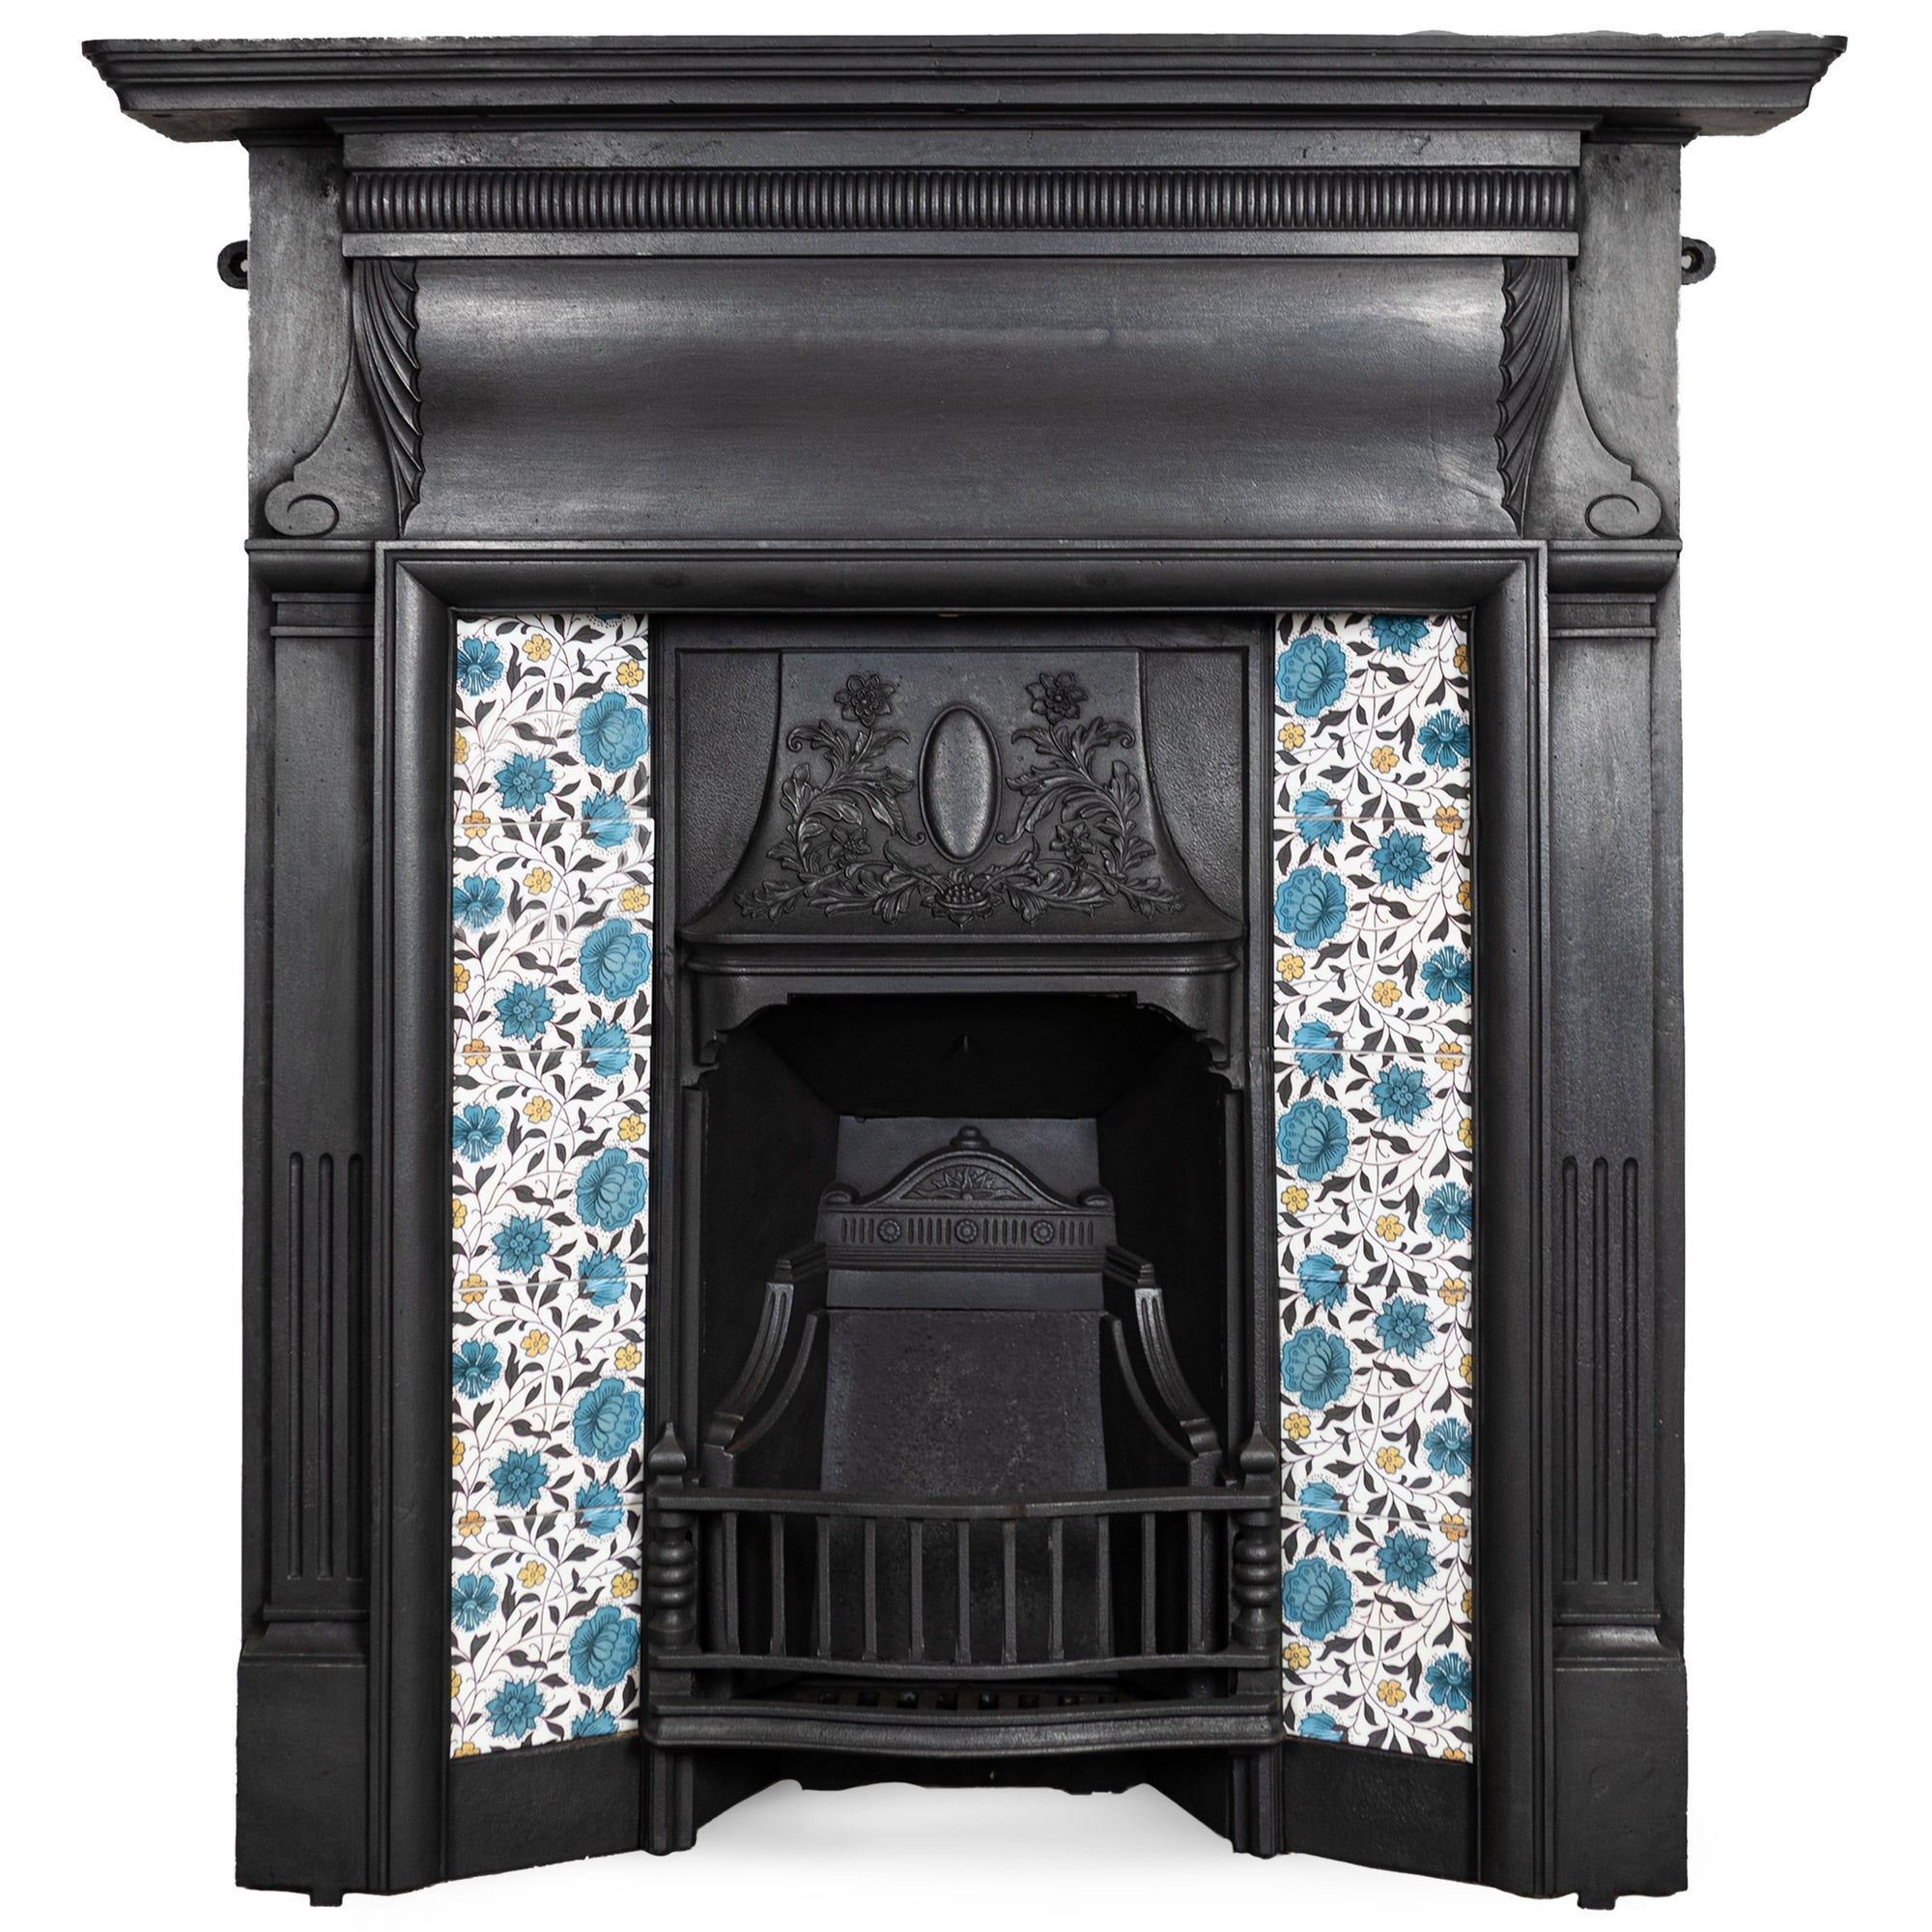 Antique Cast Iron Combination Fireplace with Blue Floral Tiles